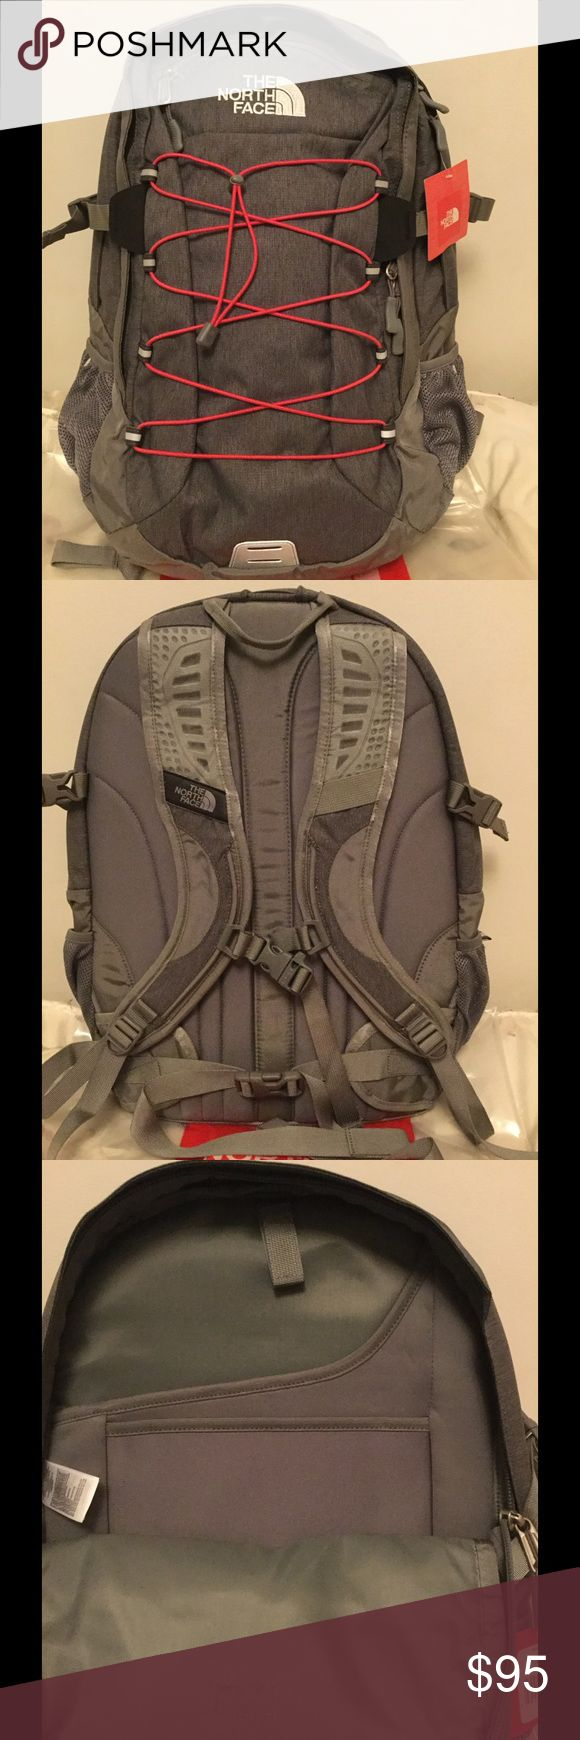 NEW The North Face Women's Borealis Backpack Brand new Women's Borealis backpack in Zinc grey Heather color, contains laptop and tablet sleeves, with additional compartments in a separate pocket.  Price is firm. No trade. The North Face Bags Backpacks